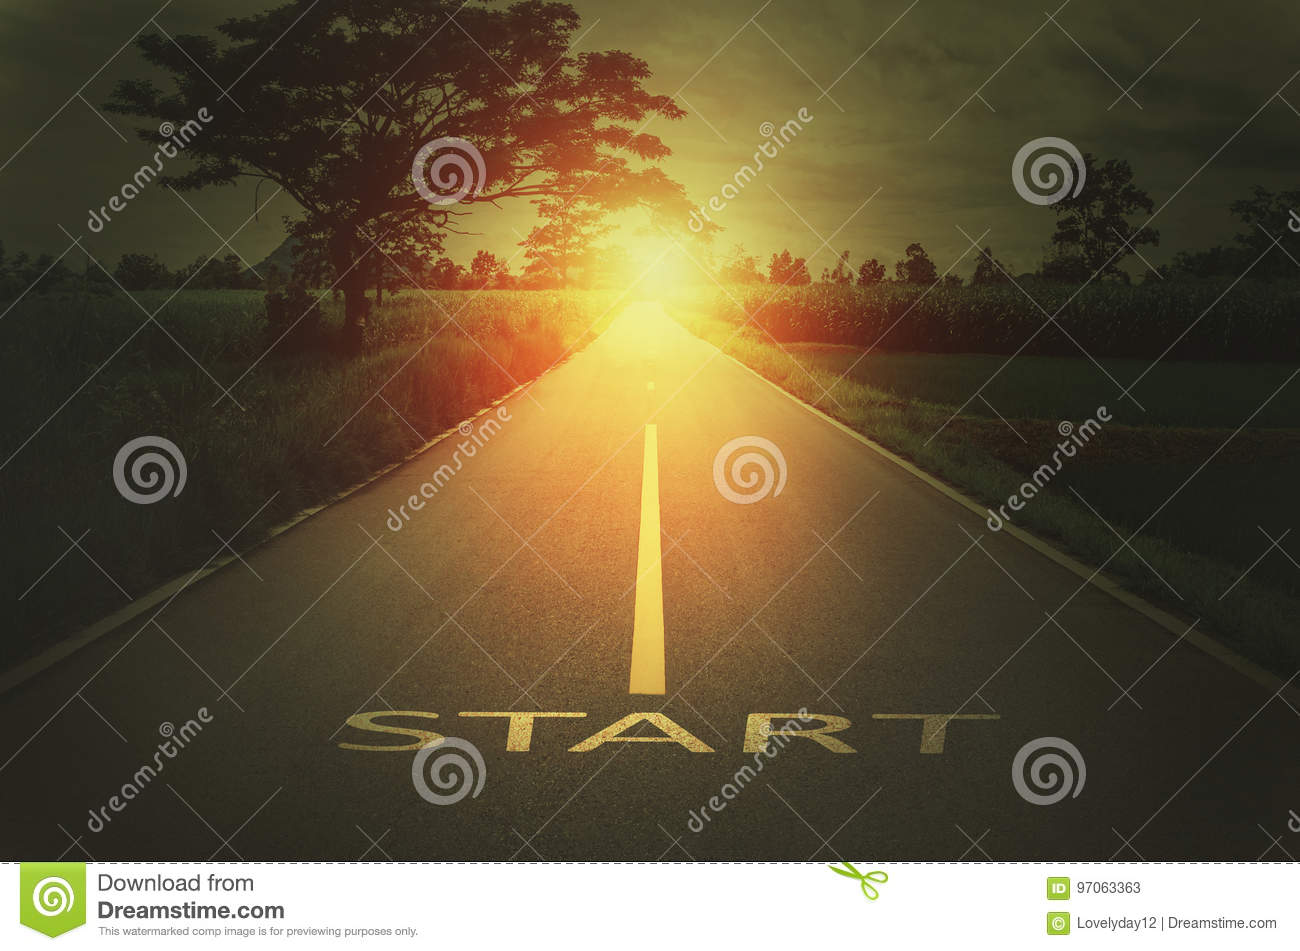 Conceptual image with text word start on asphalt road